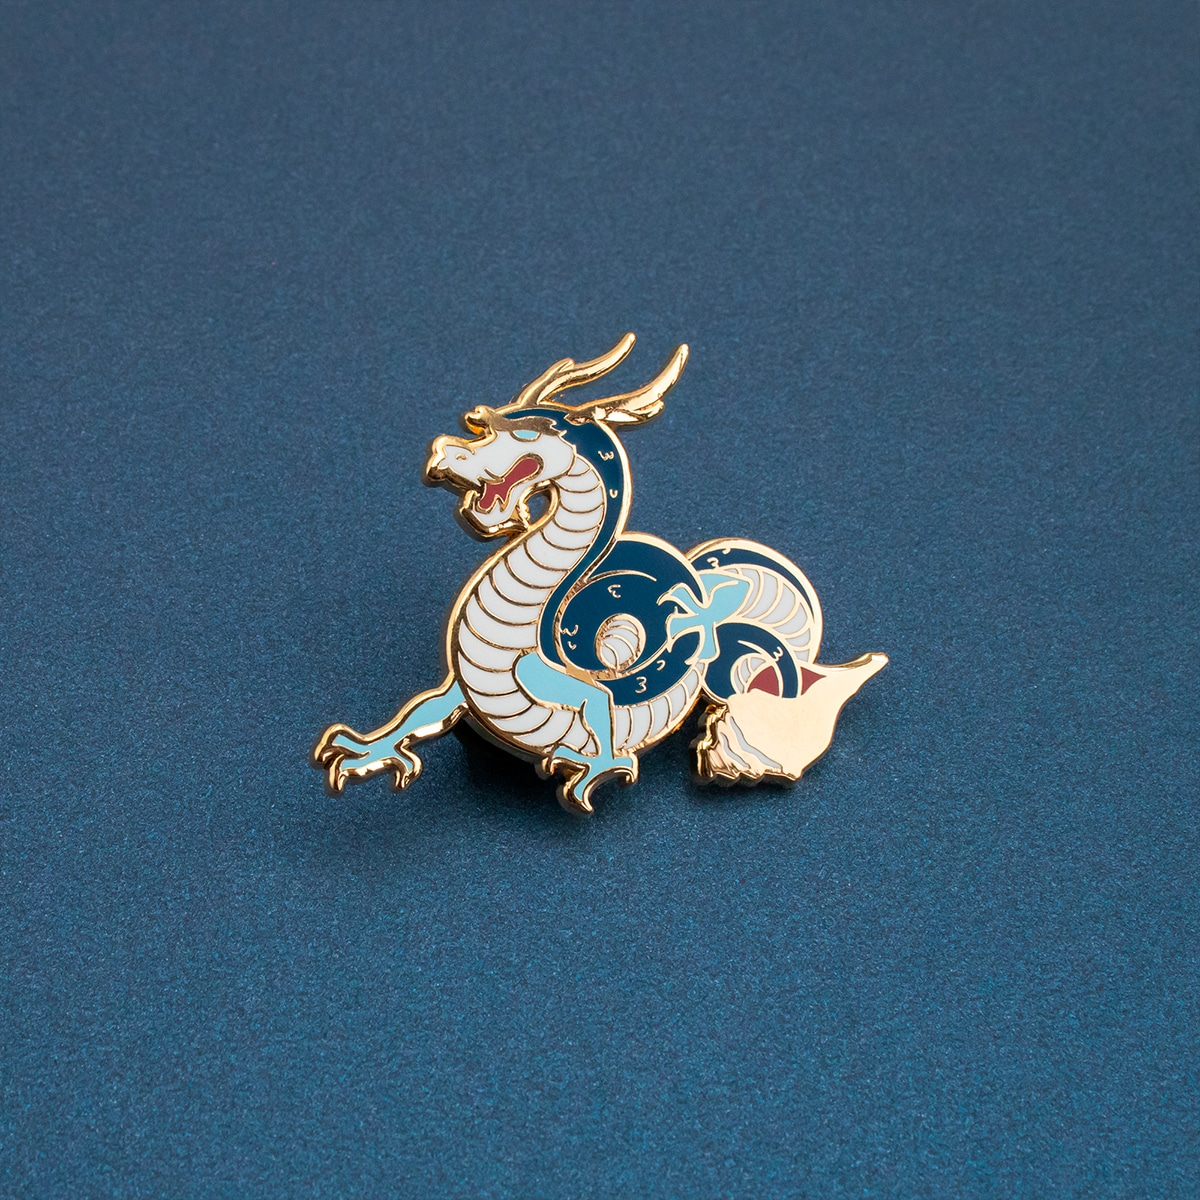 Sea Dragon Enamel Pin By Oh Jessica Jessica